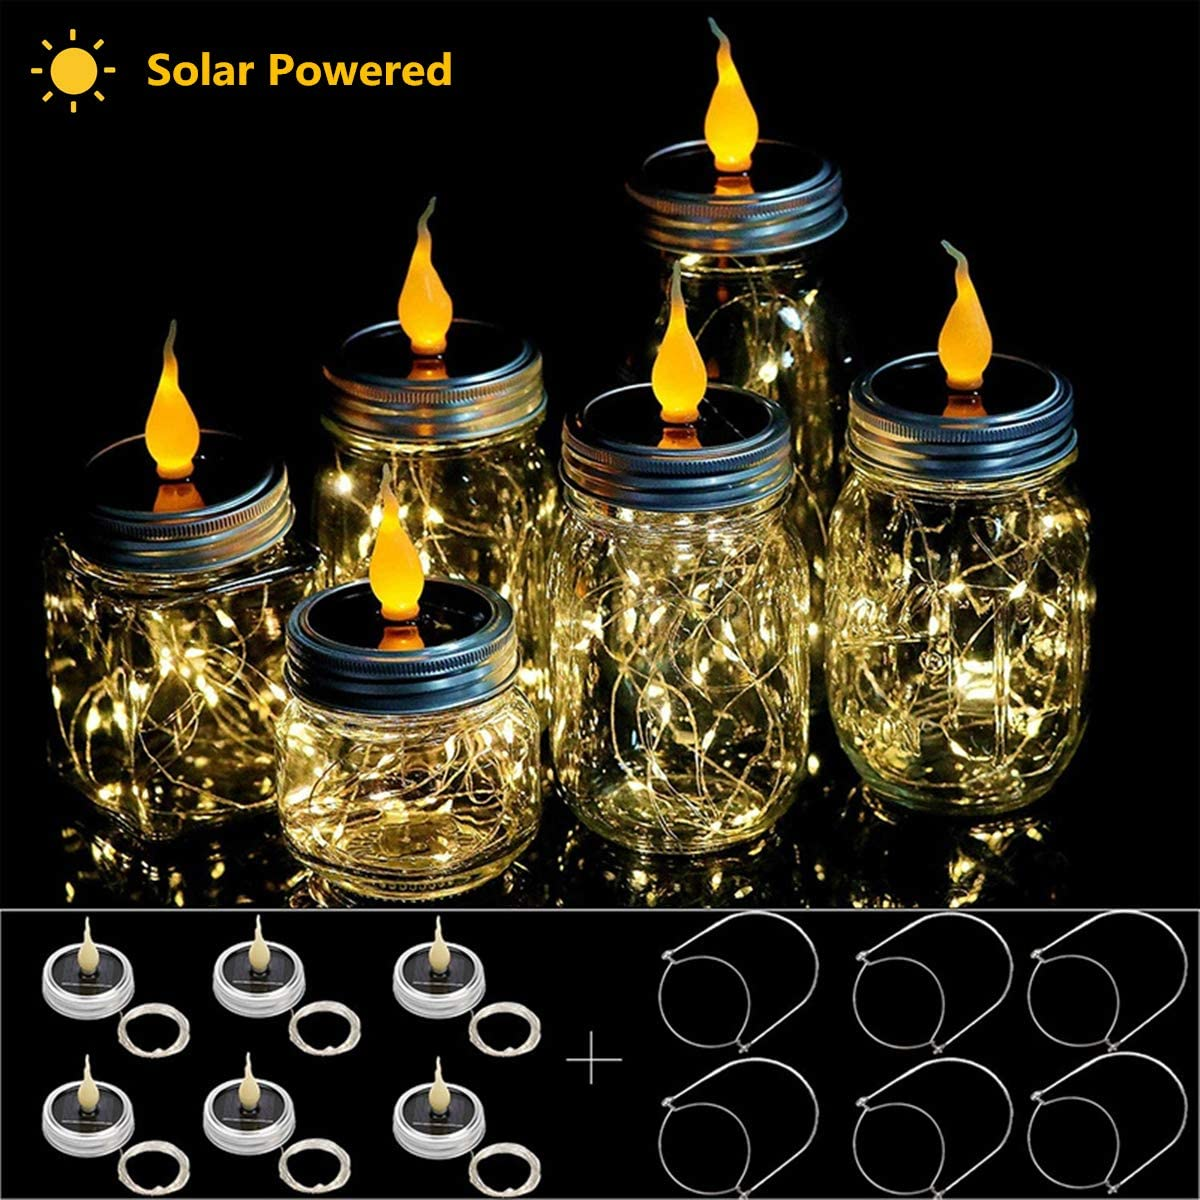 Uhomely Solar Mason Jar Lights, 6 Pack Mason Jar Candle Lights Warm While 20 Led 78Ft Lantern Lights with Hangers, Waterproof String Lid Lights for Patio Yard Porch Garden Wedding Cafe Decor, No Jars